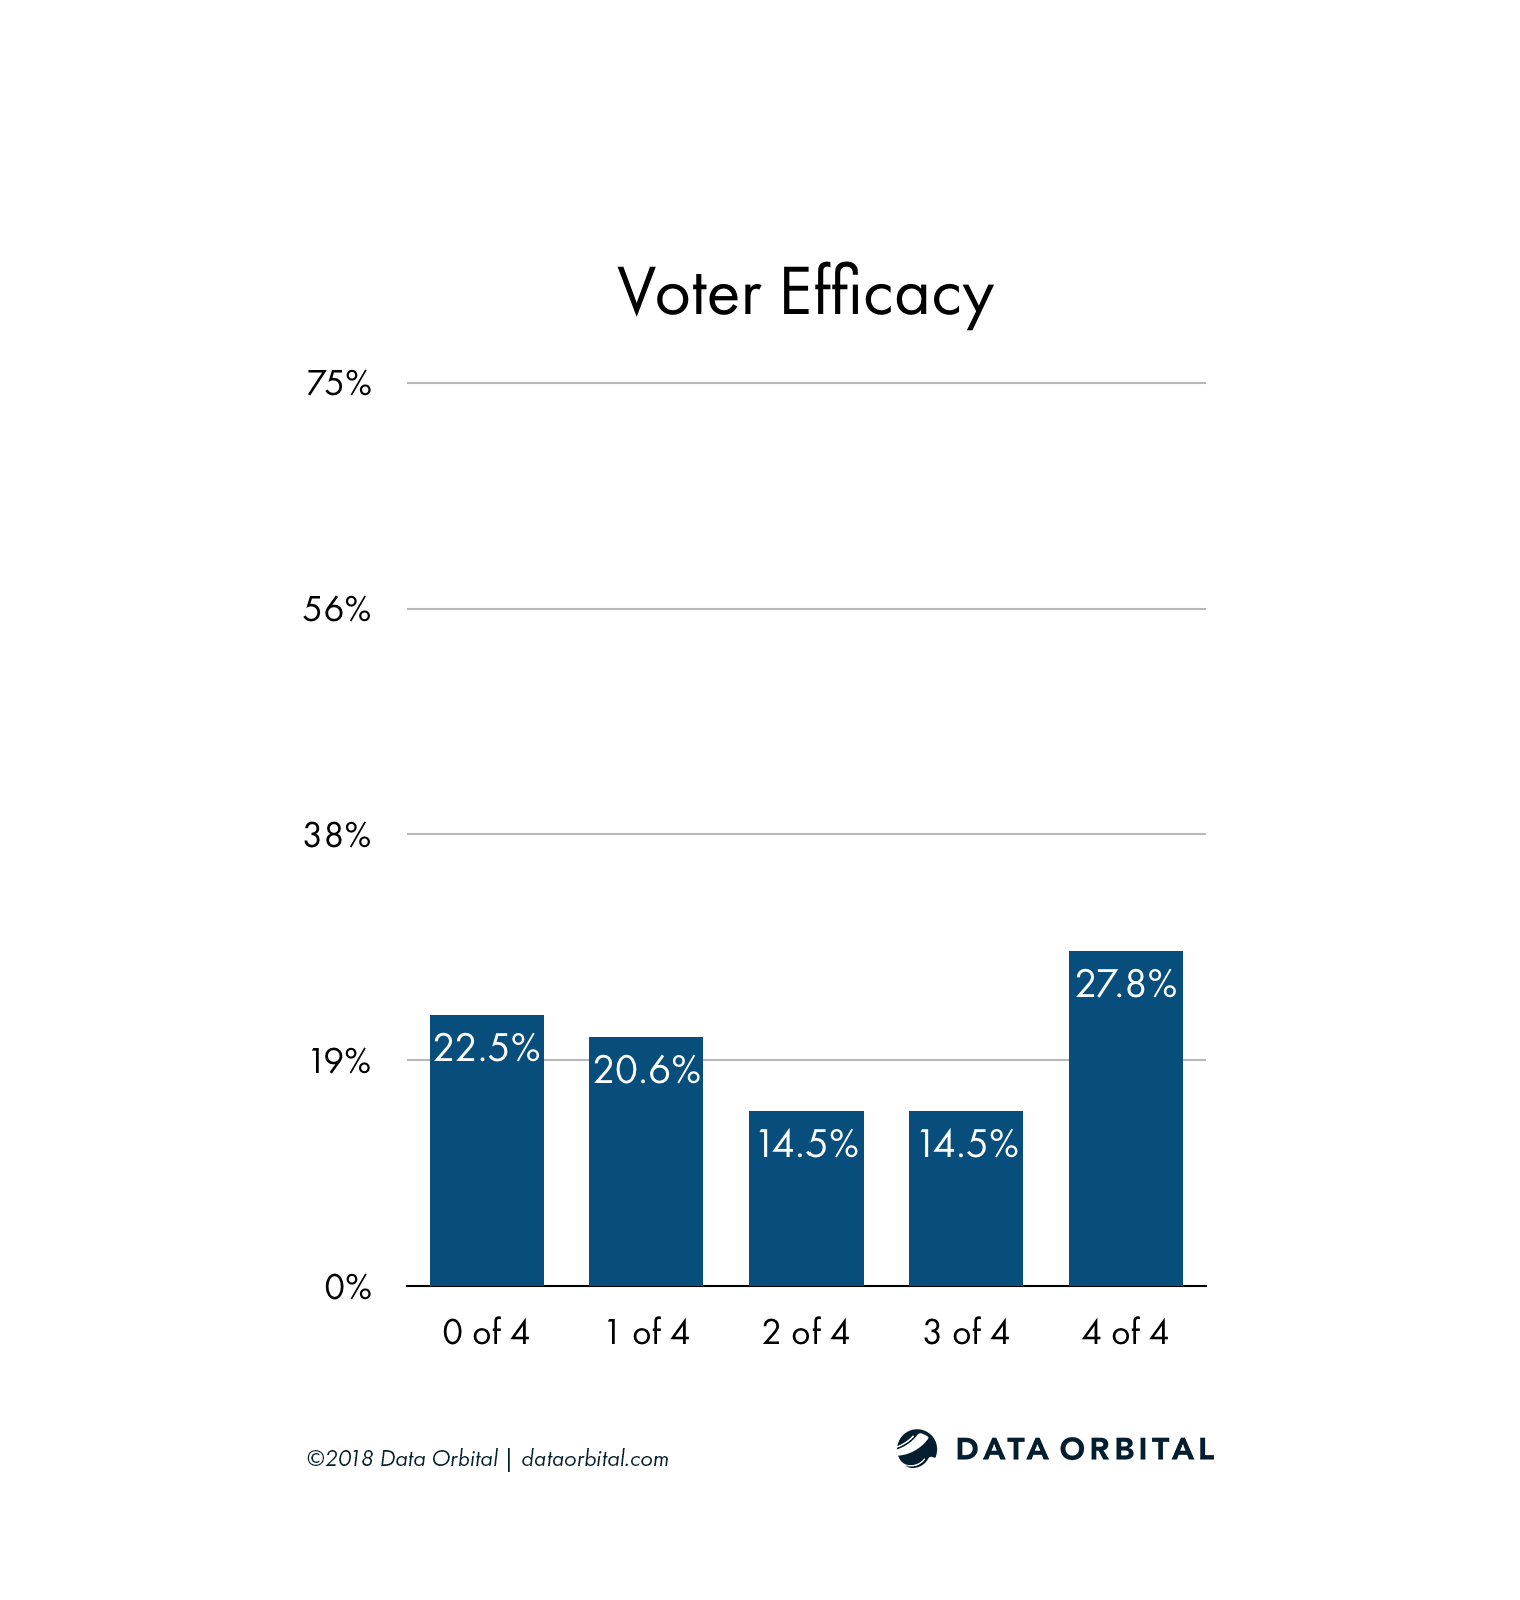 AZ08 District Profile Voter Efficacy